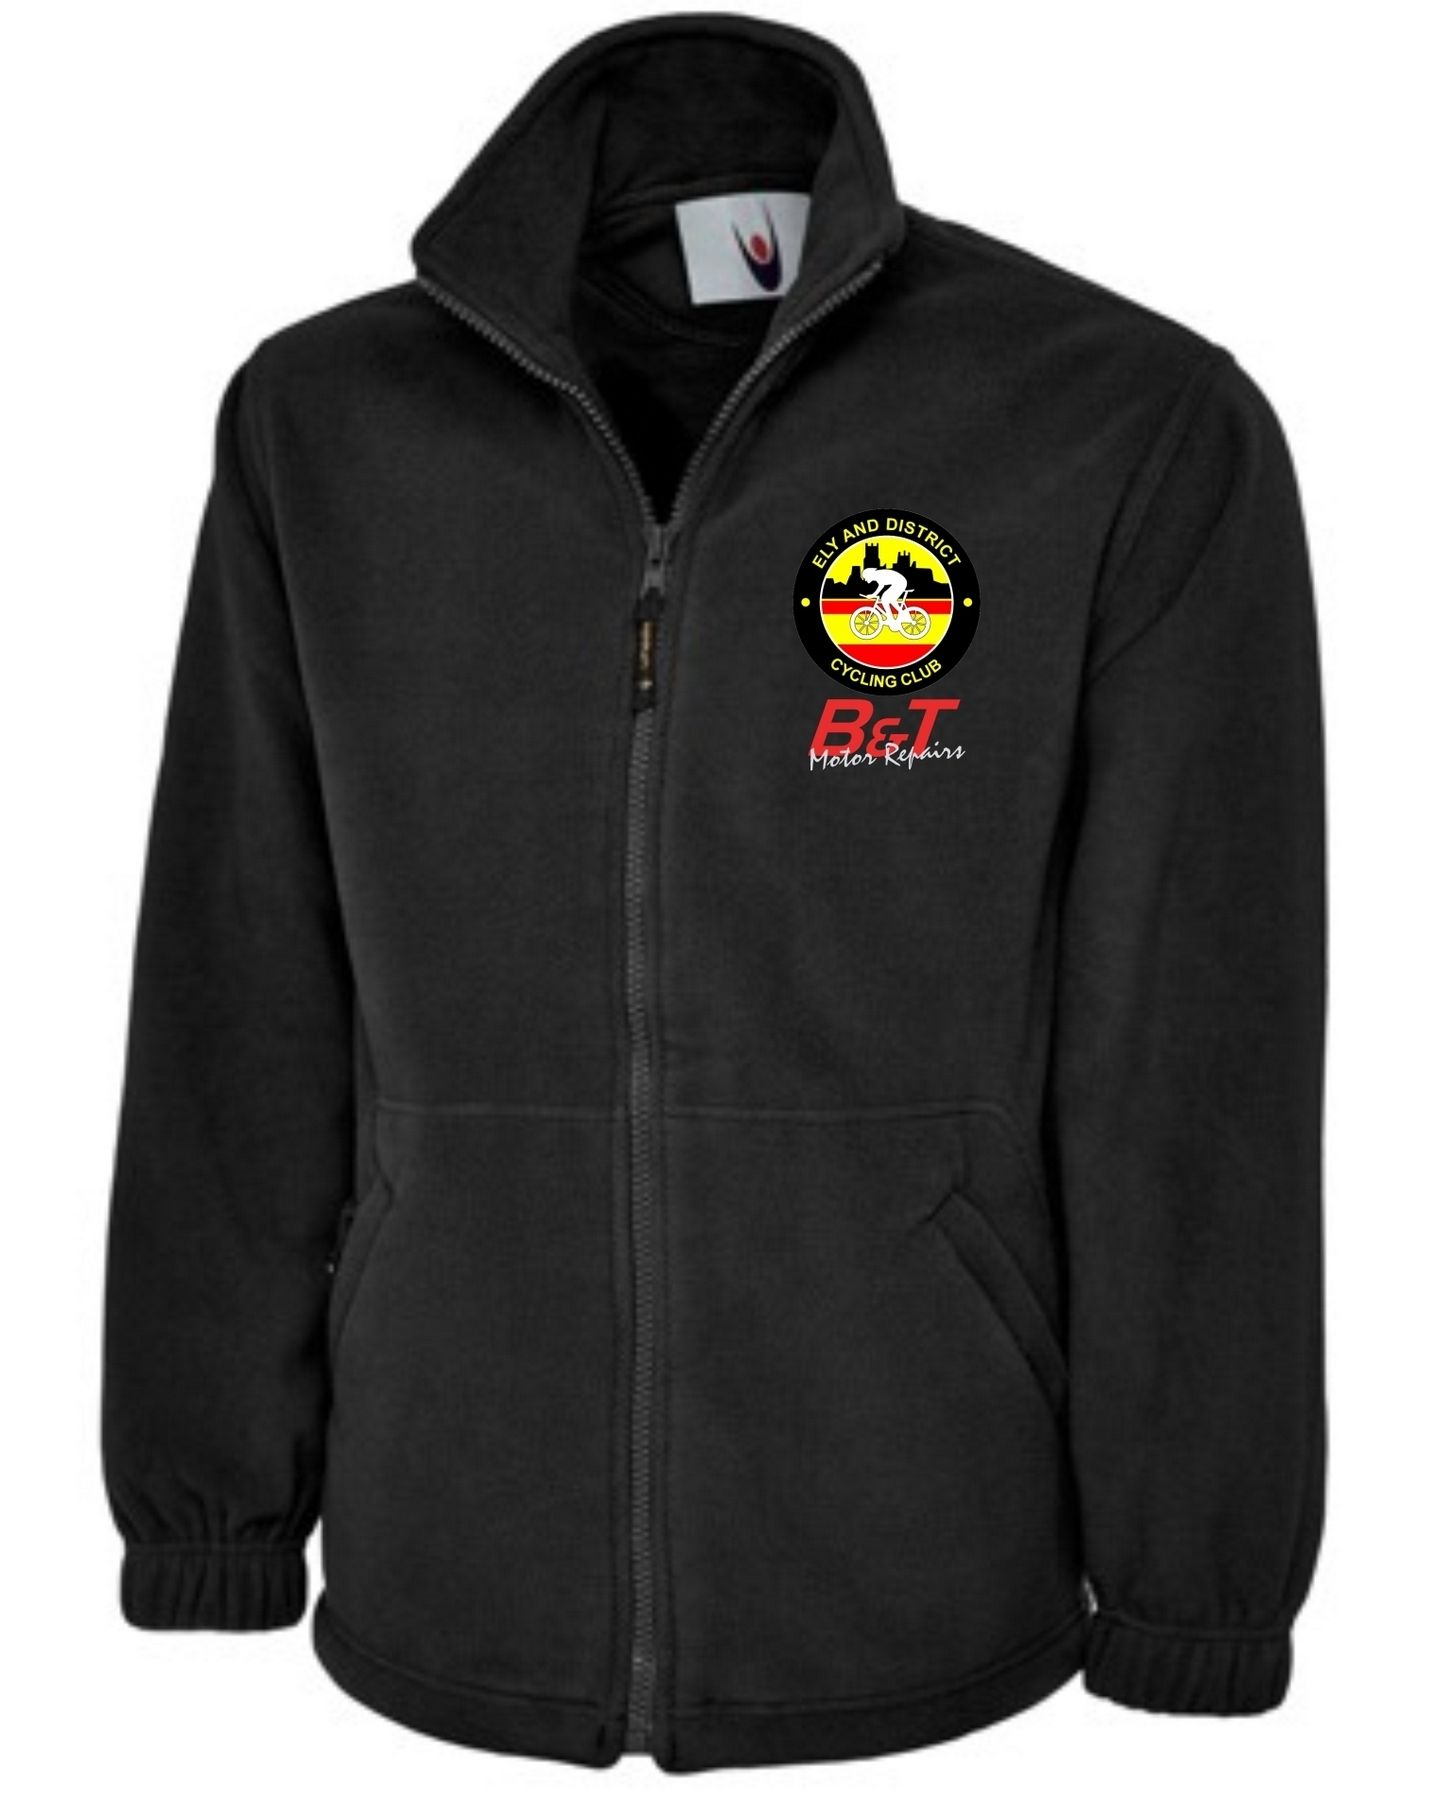 EDCC – Full Zip Fleece in Black